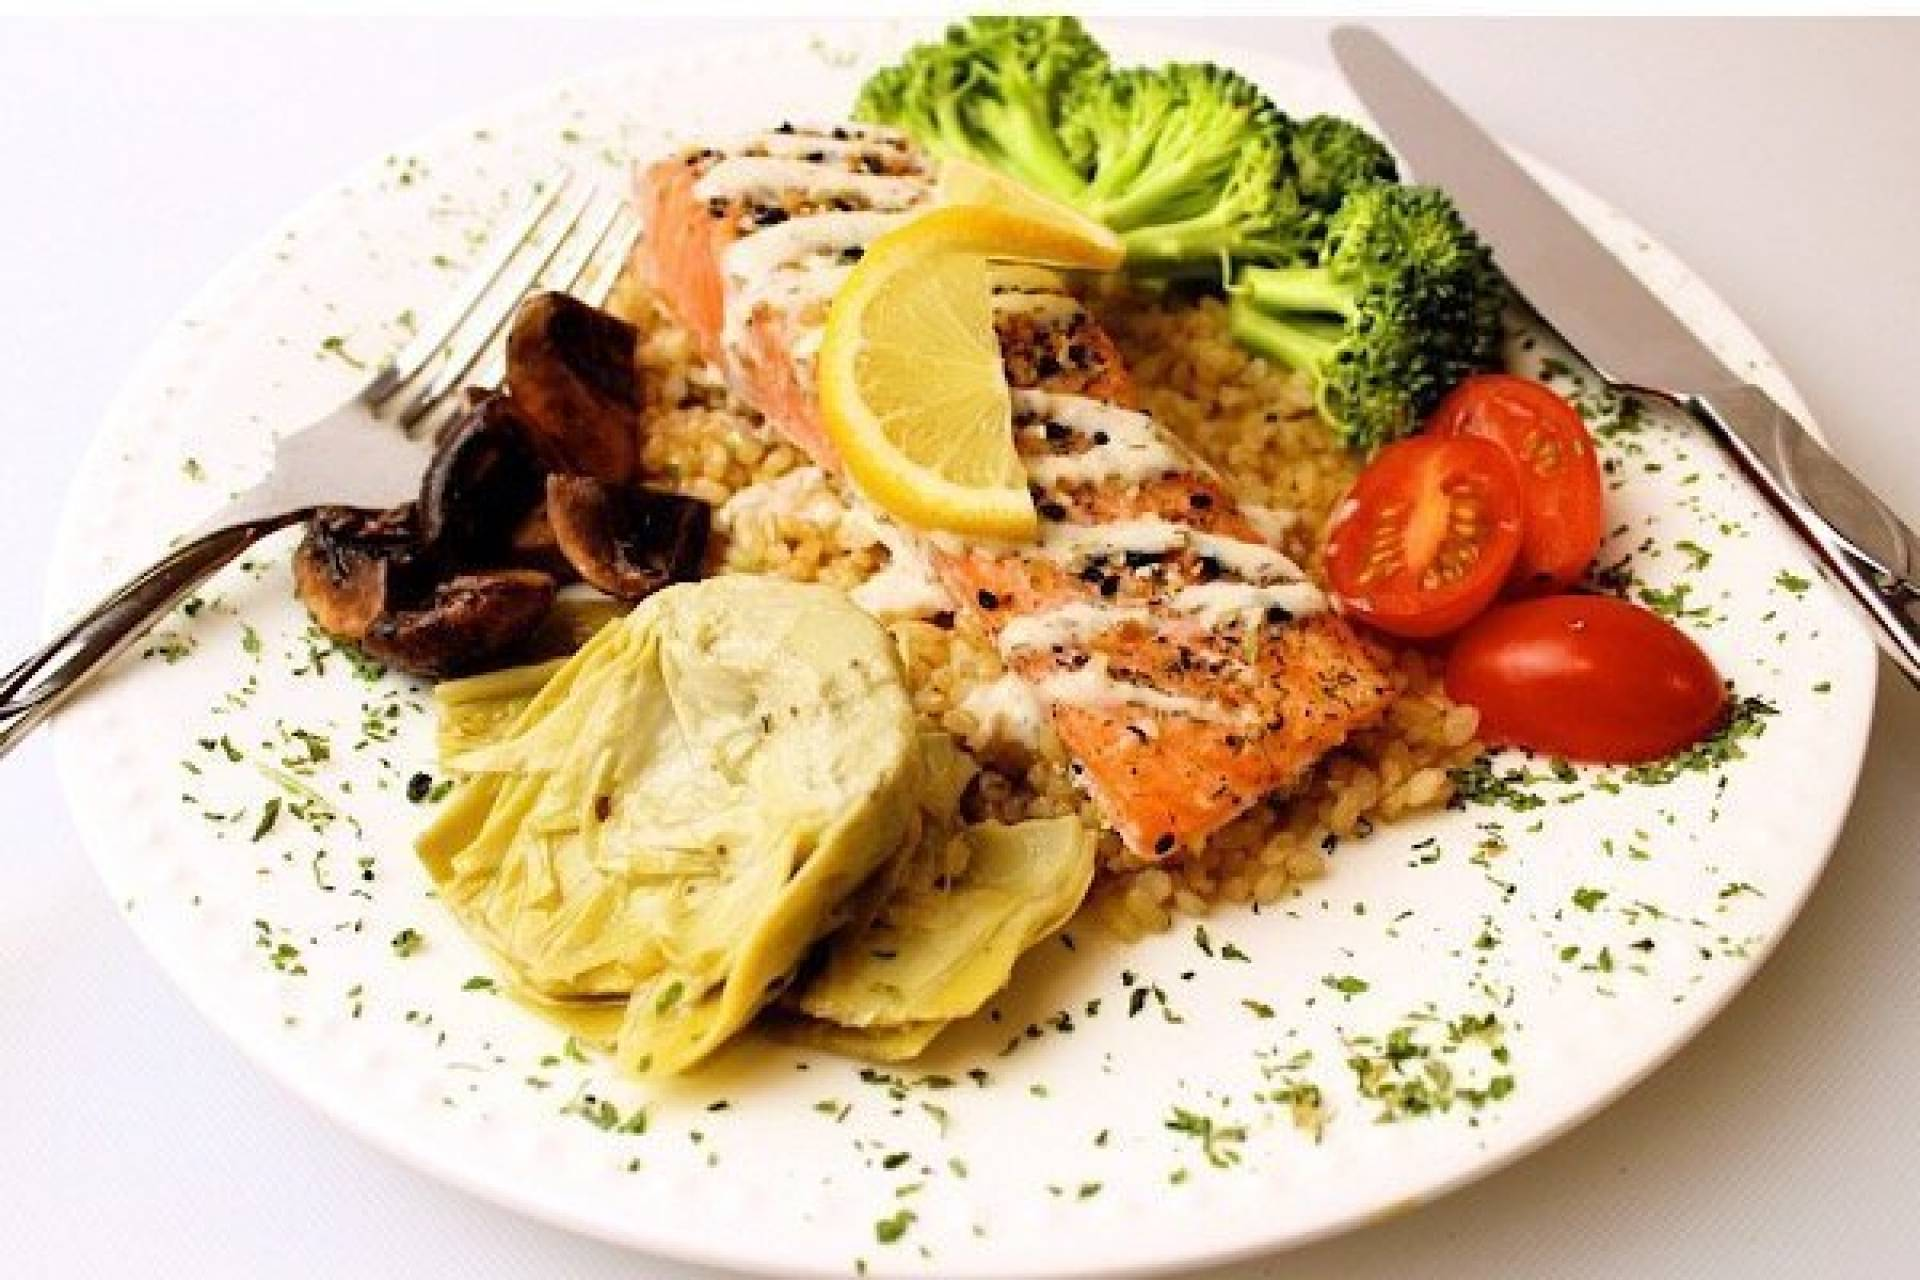 Sesame Dill Encrusted Baked Salmon with Feta Dill Sauce